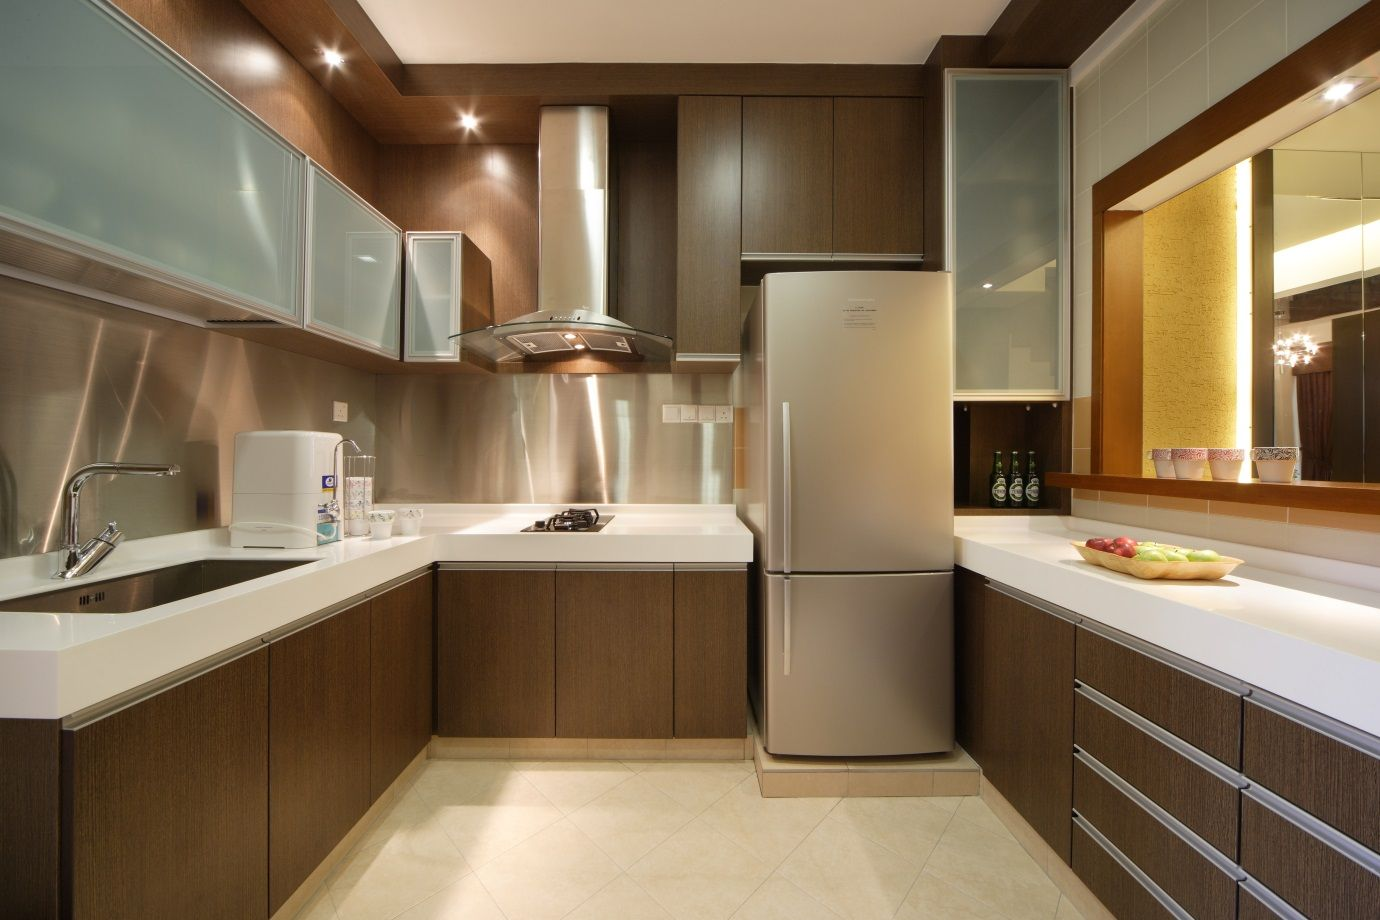 Malaysia Modern Kitchen Cabinet Design Google Search Architectural Interior Design